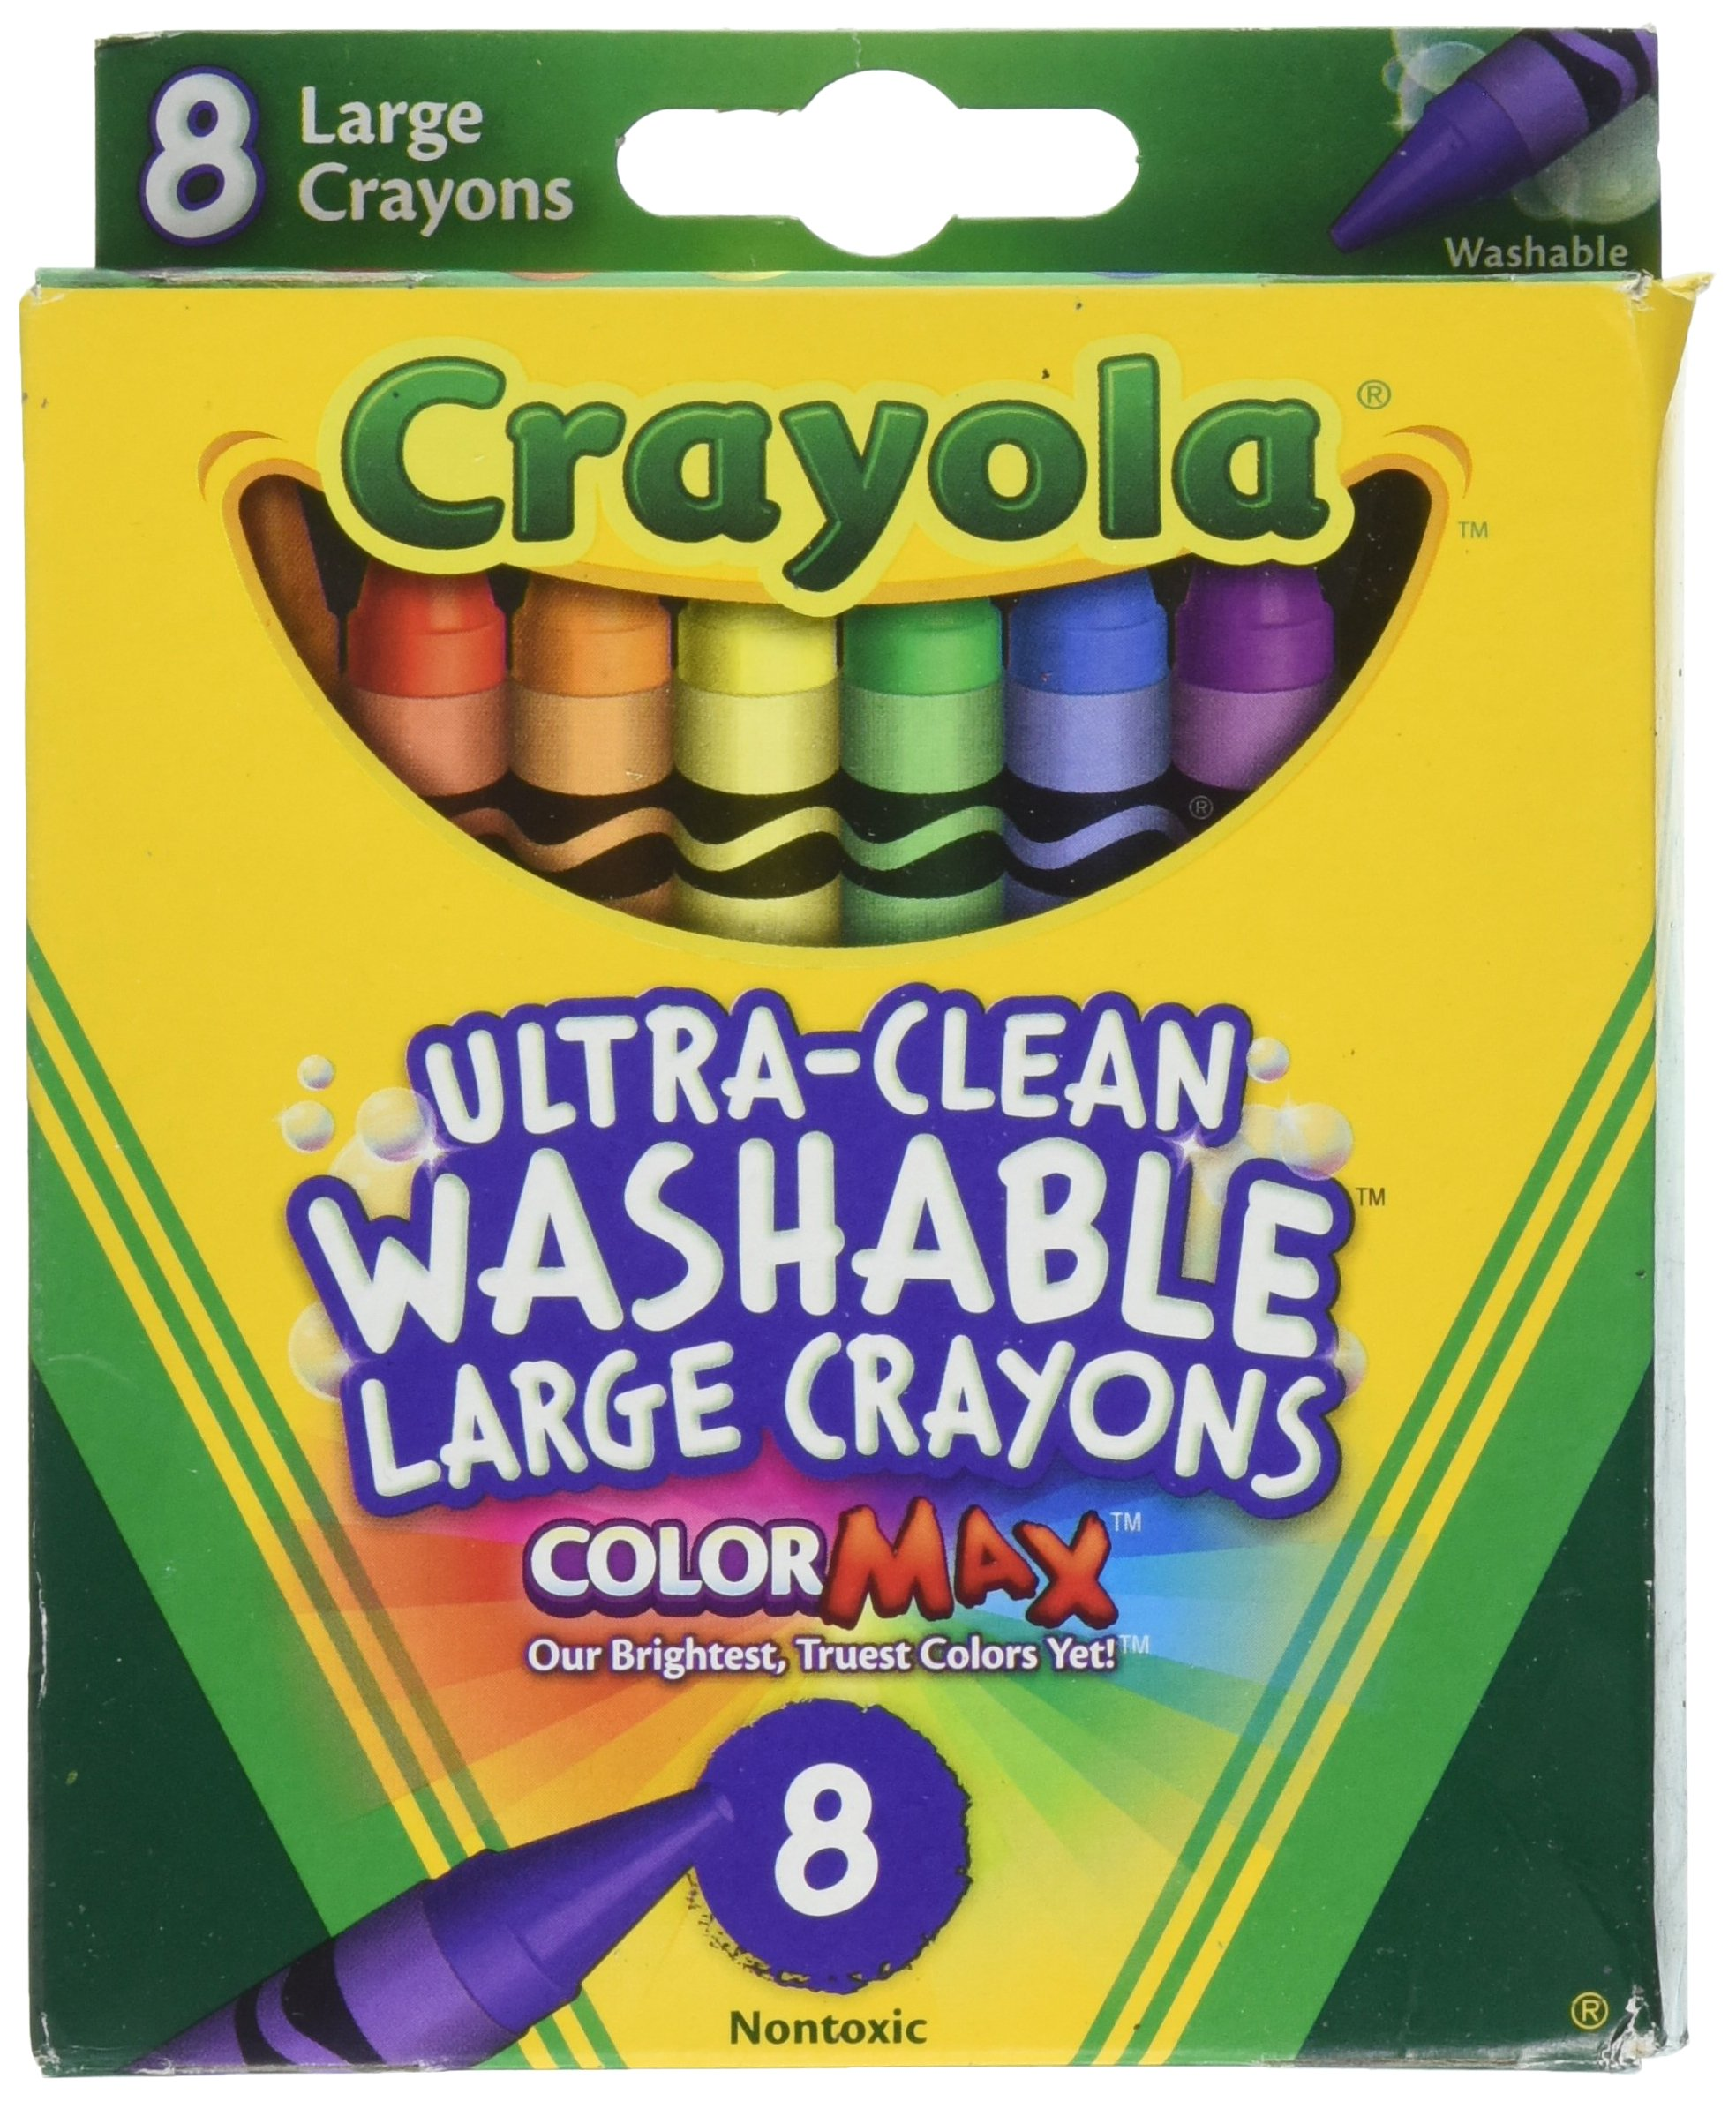 Crayola Washable Crayons, Large, 8 Colors - 2 Packs